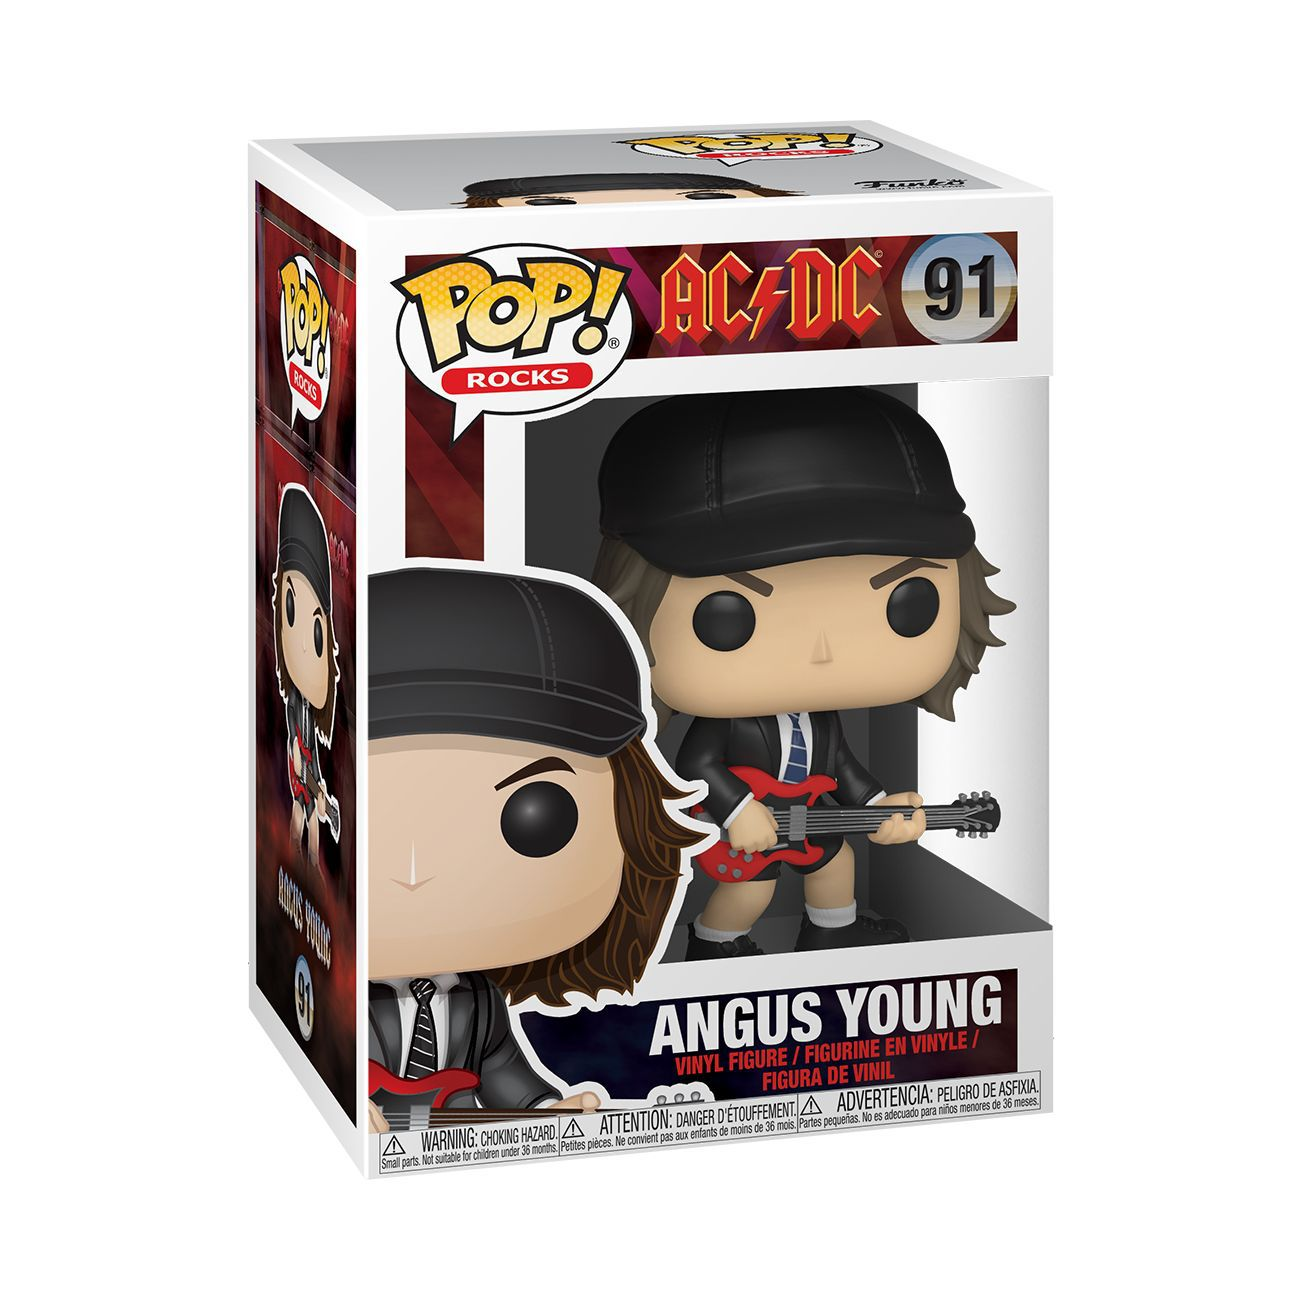 Angus Young Funko Pop! Rocks Vinyl Figure